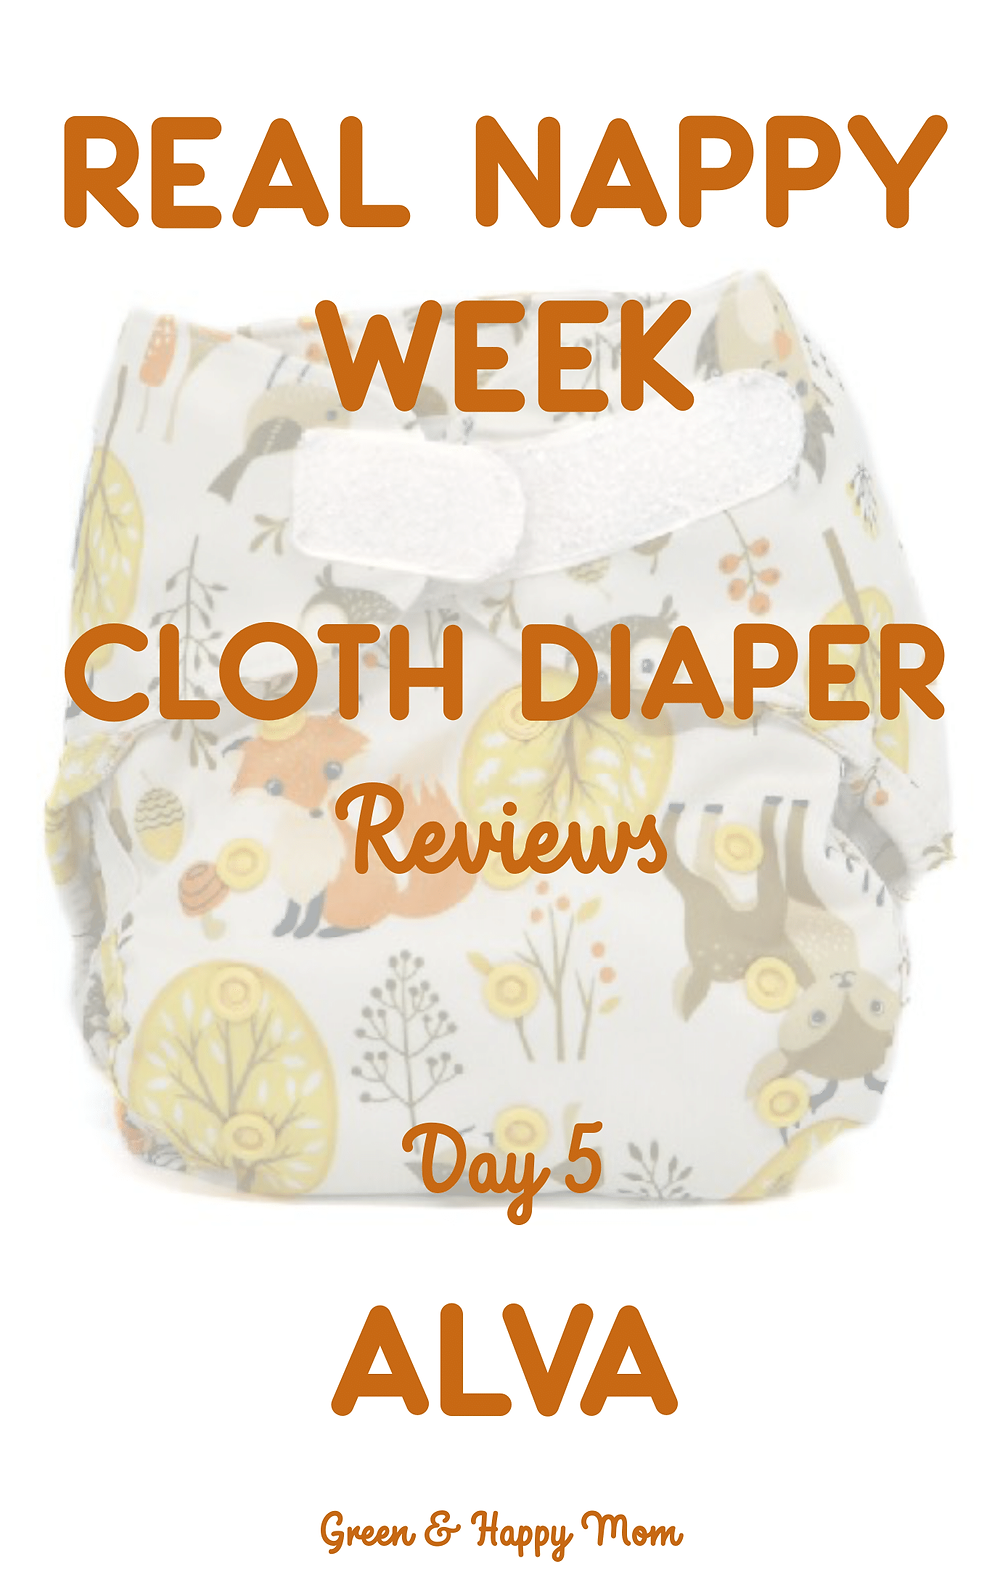 Alva Baby Cloth Diaper review